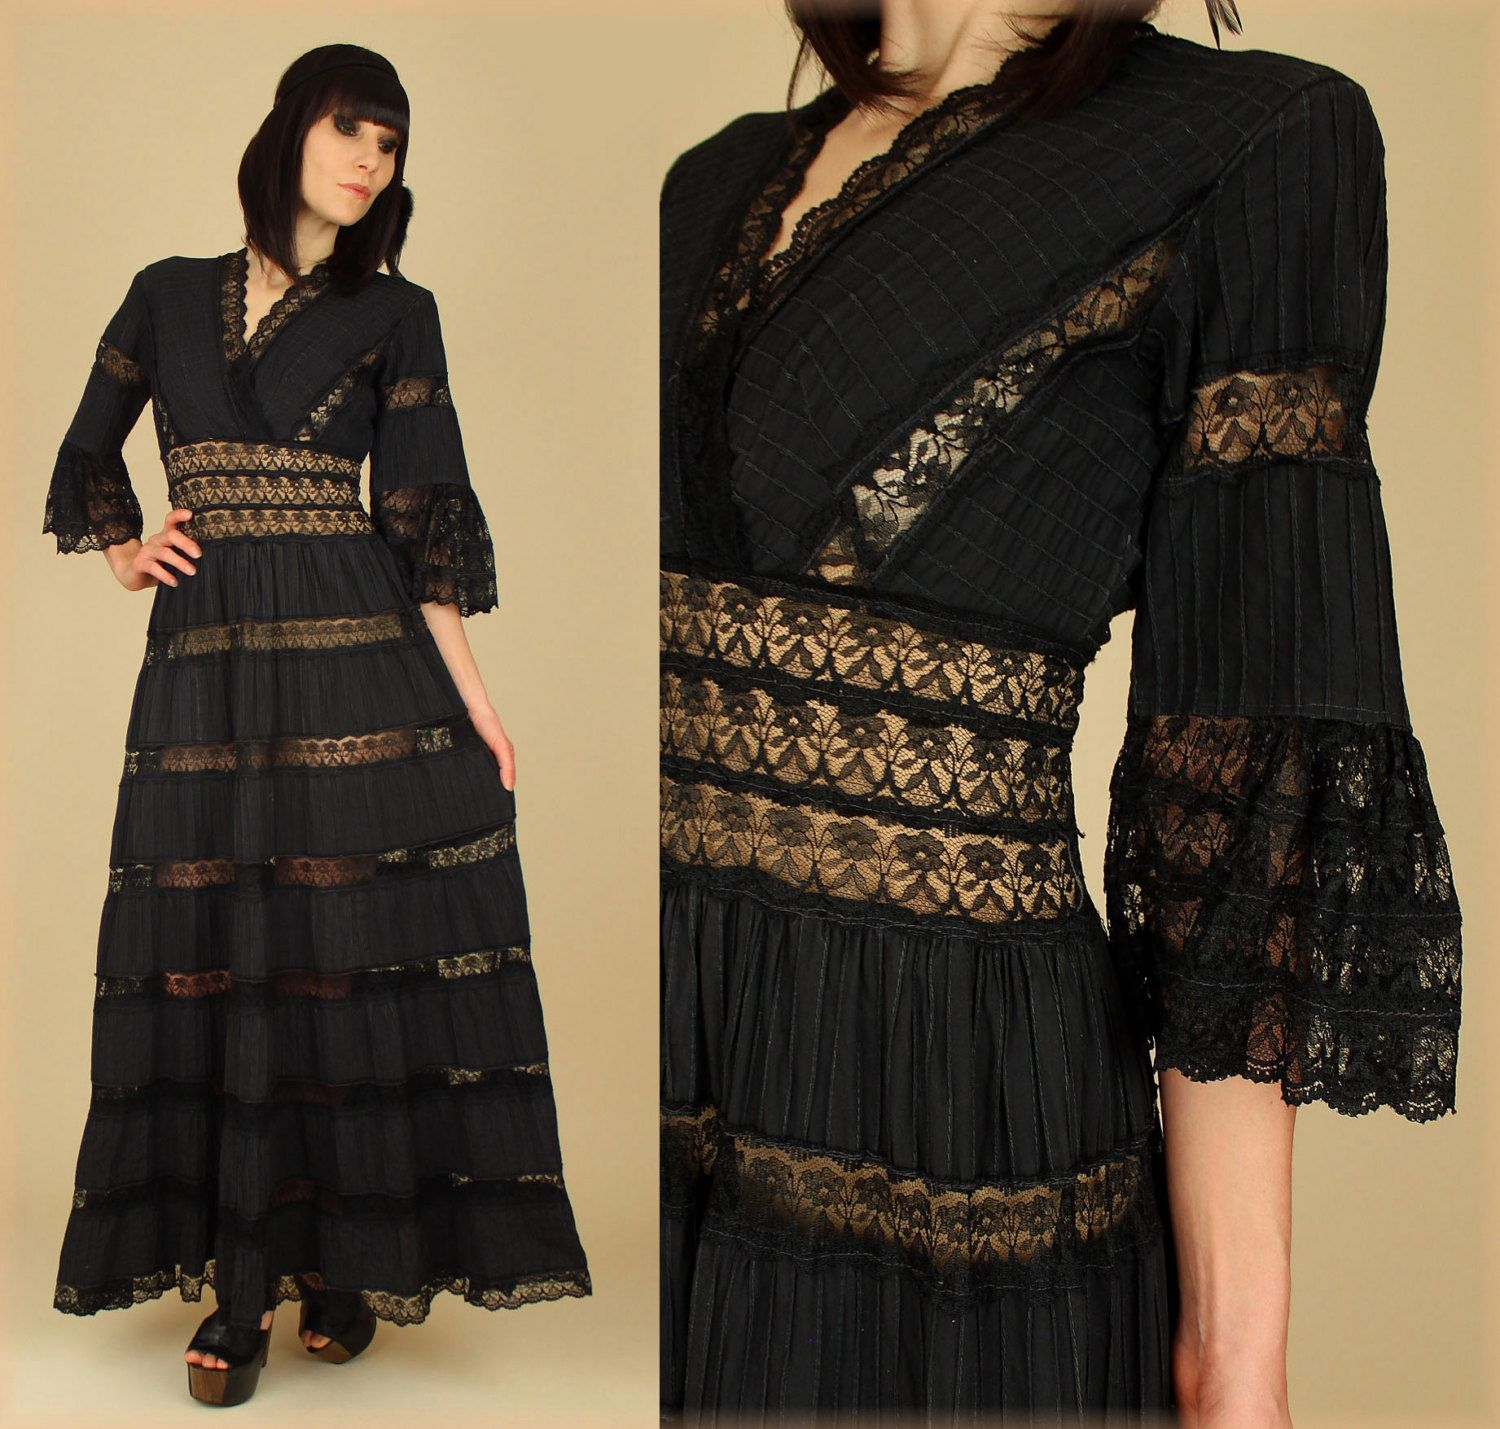 Vintage us black lace pin tuck mexican wedding maxi dress s